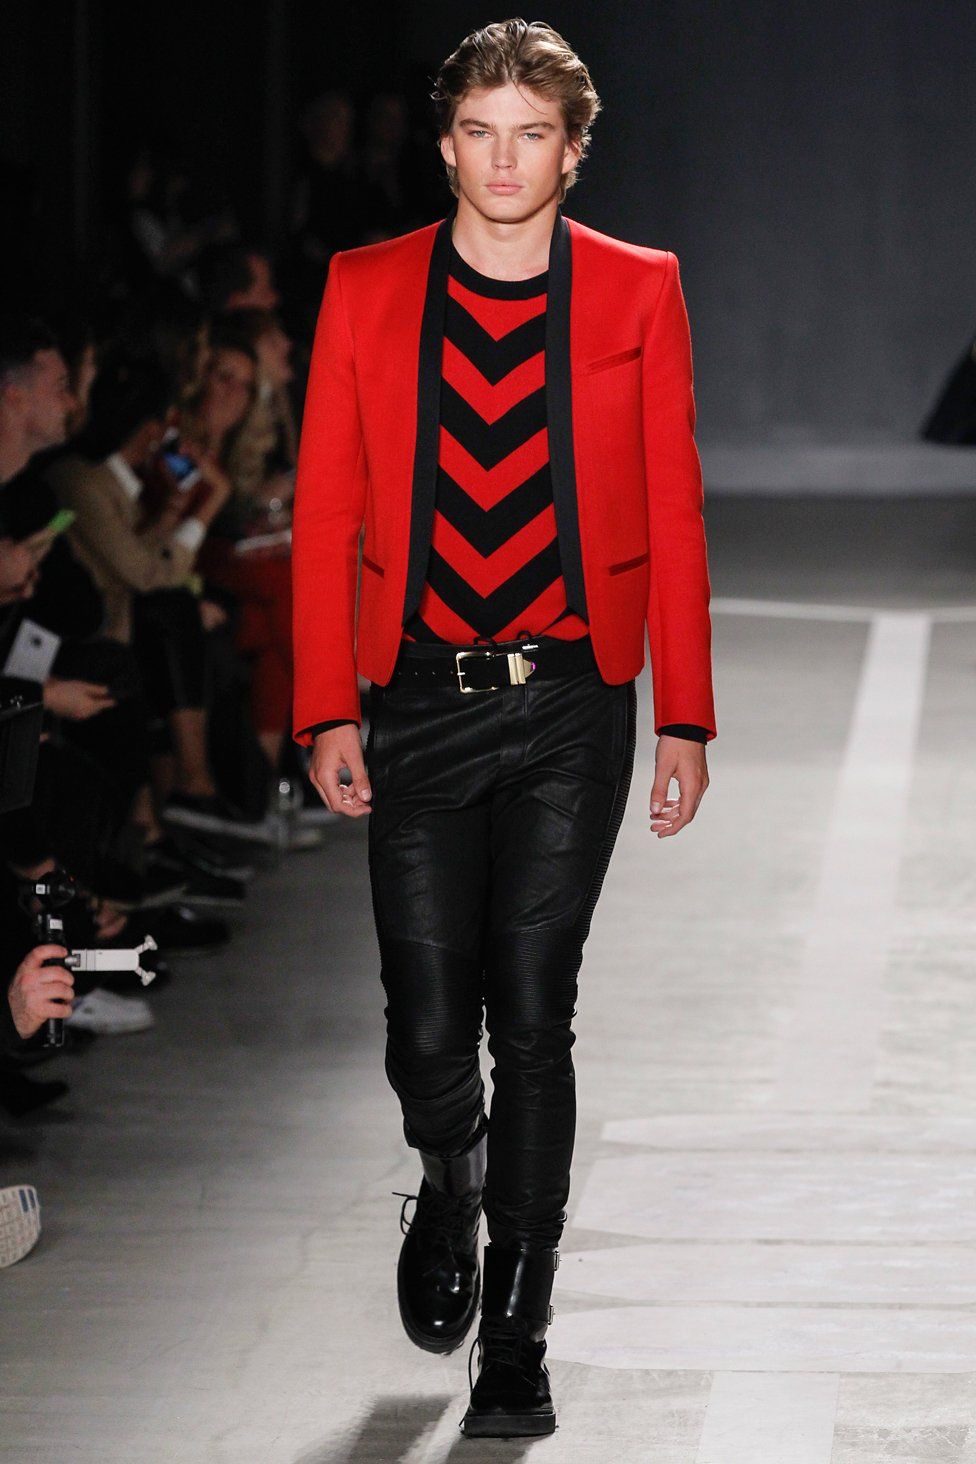 h-and-m-balmain-runway-fall-2016-29-sagaboi